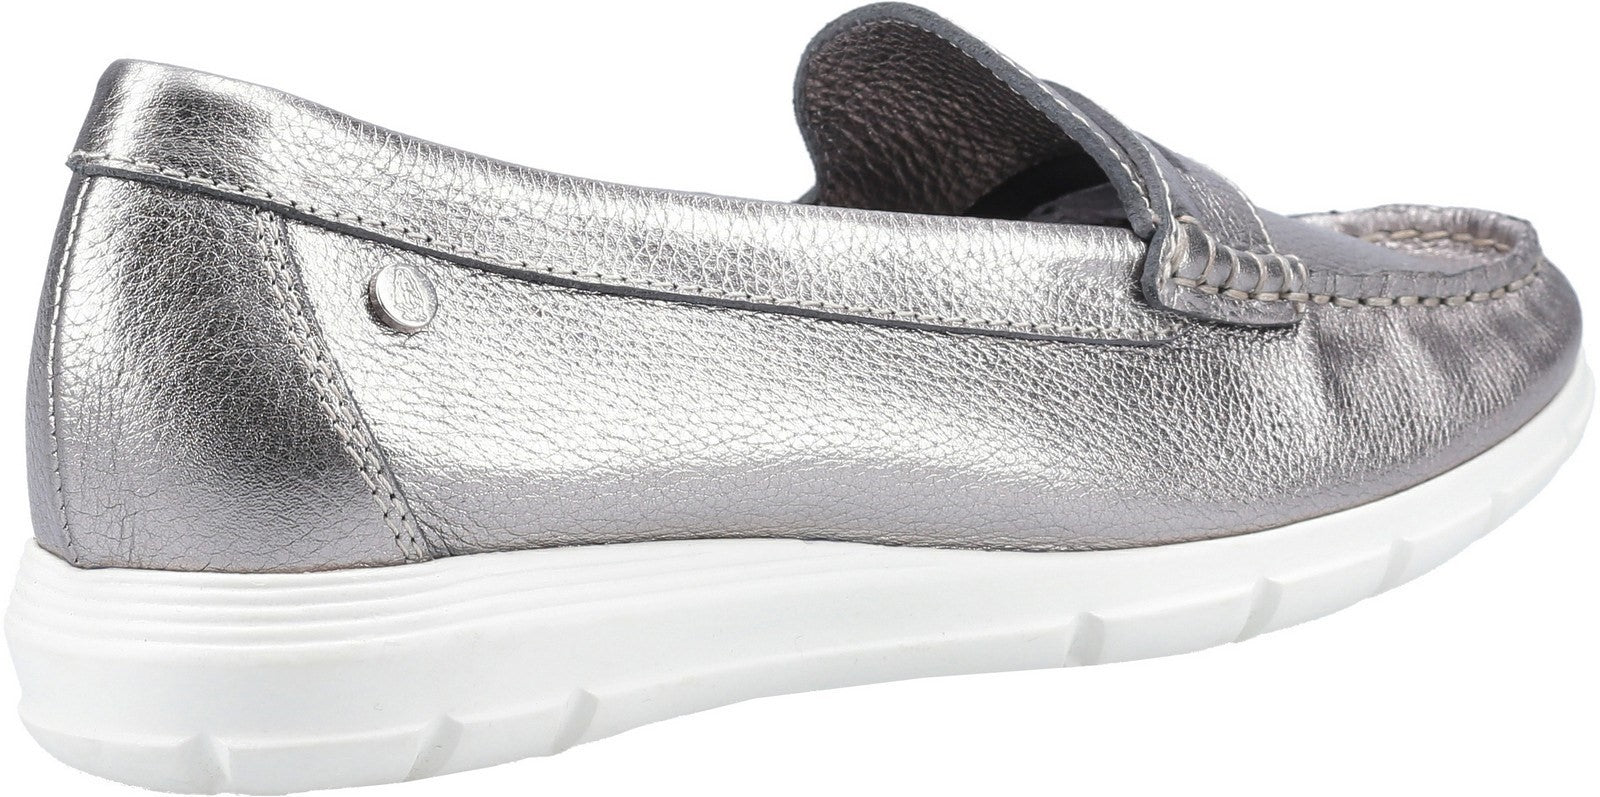 Hush Puppies Women's Paige Slip On Loafer Various Colours 30242